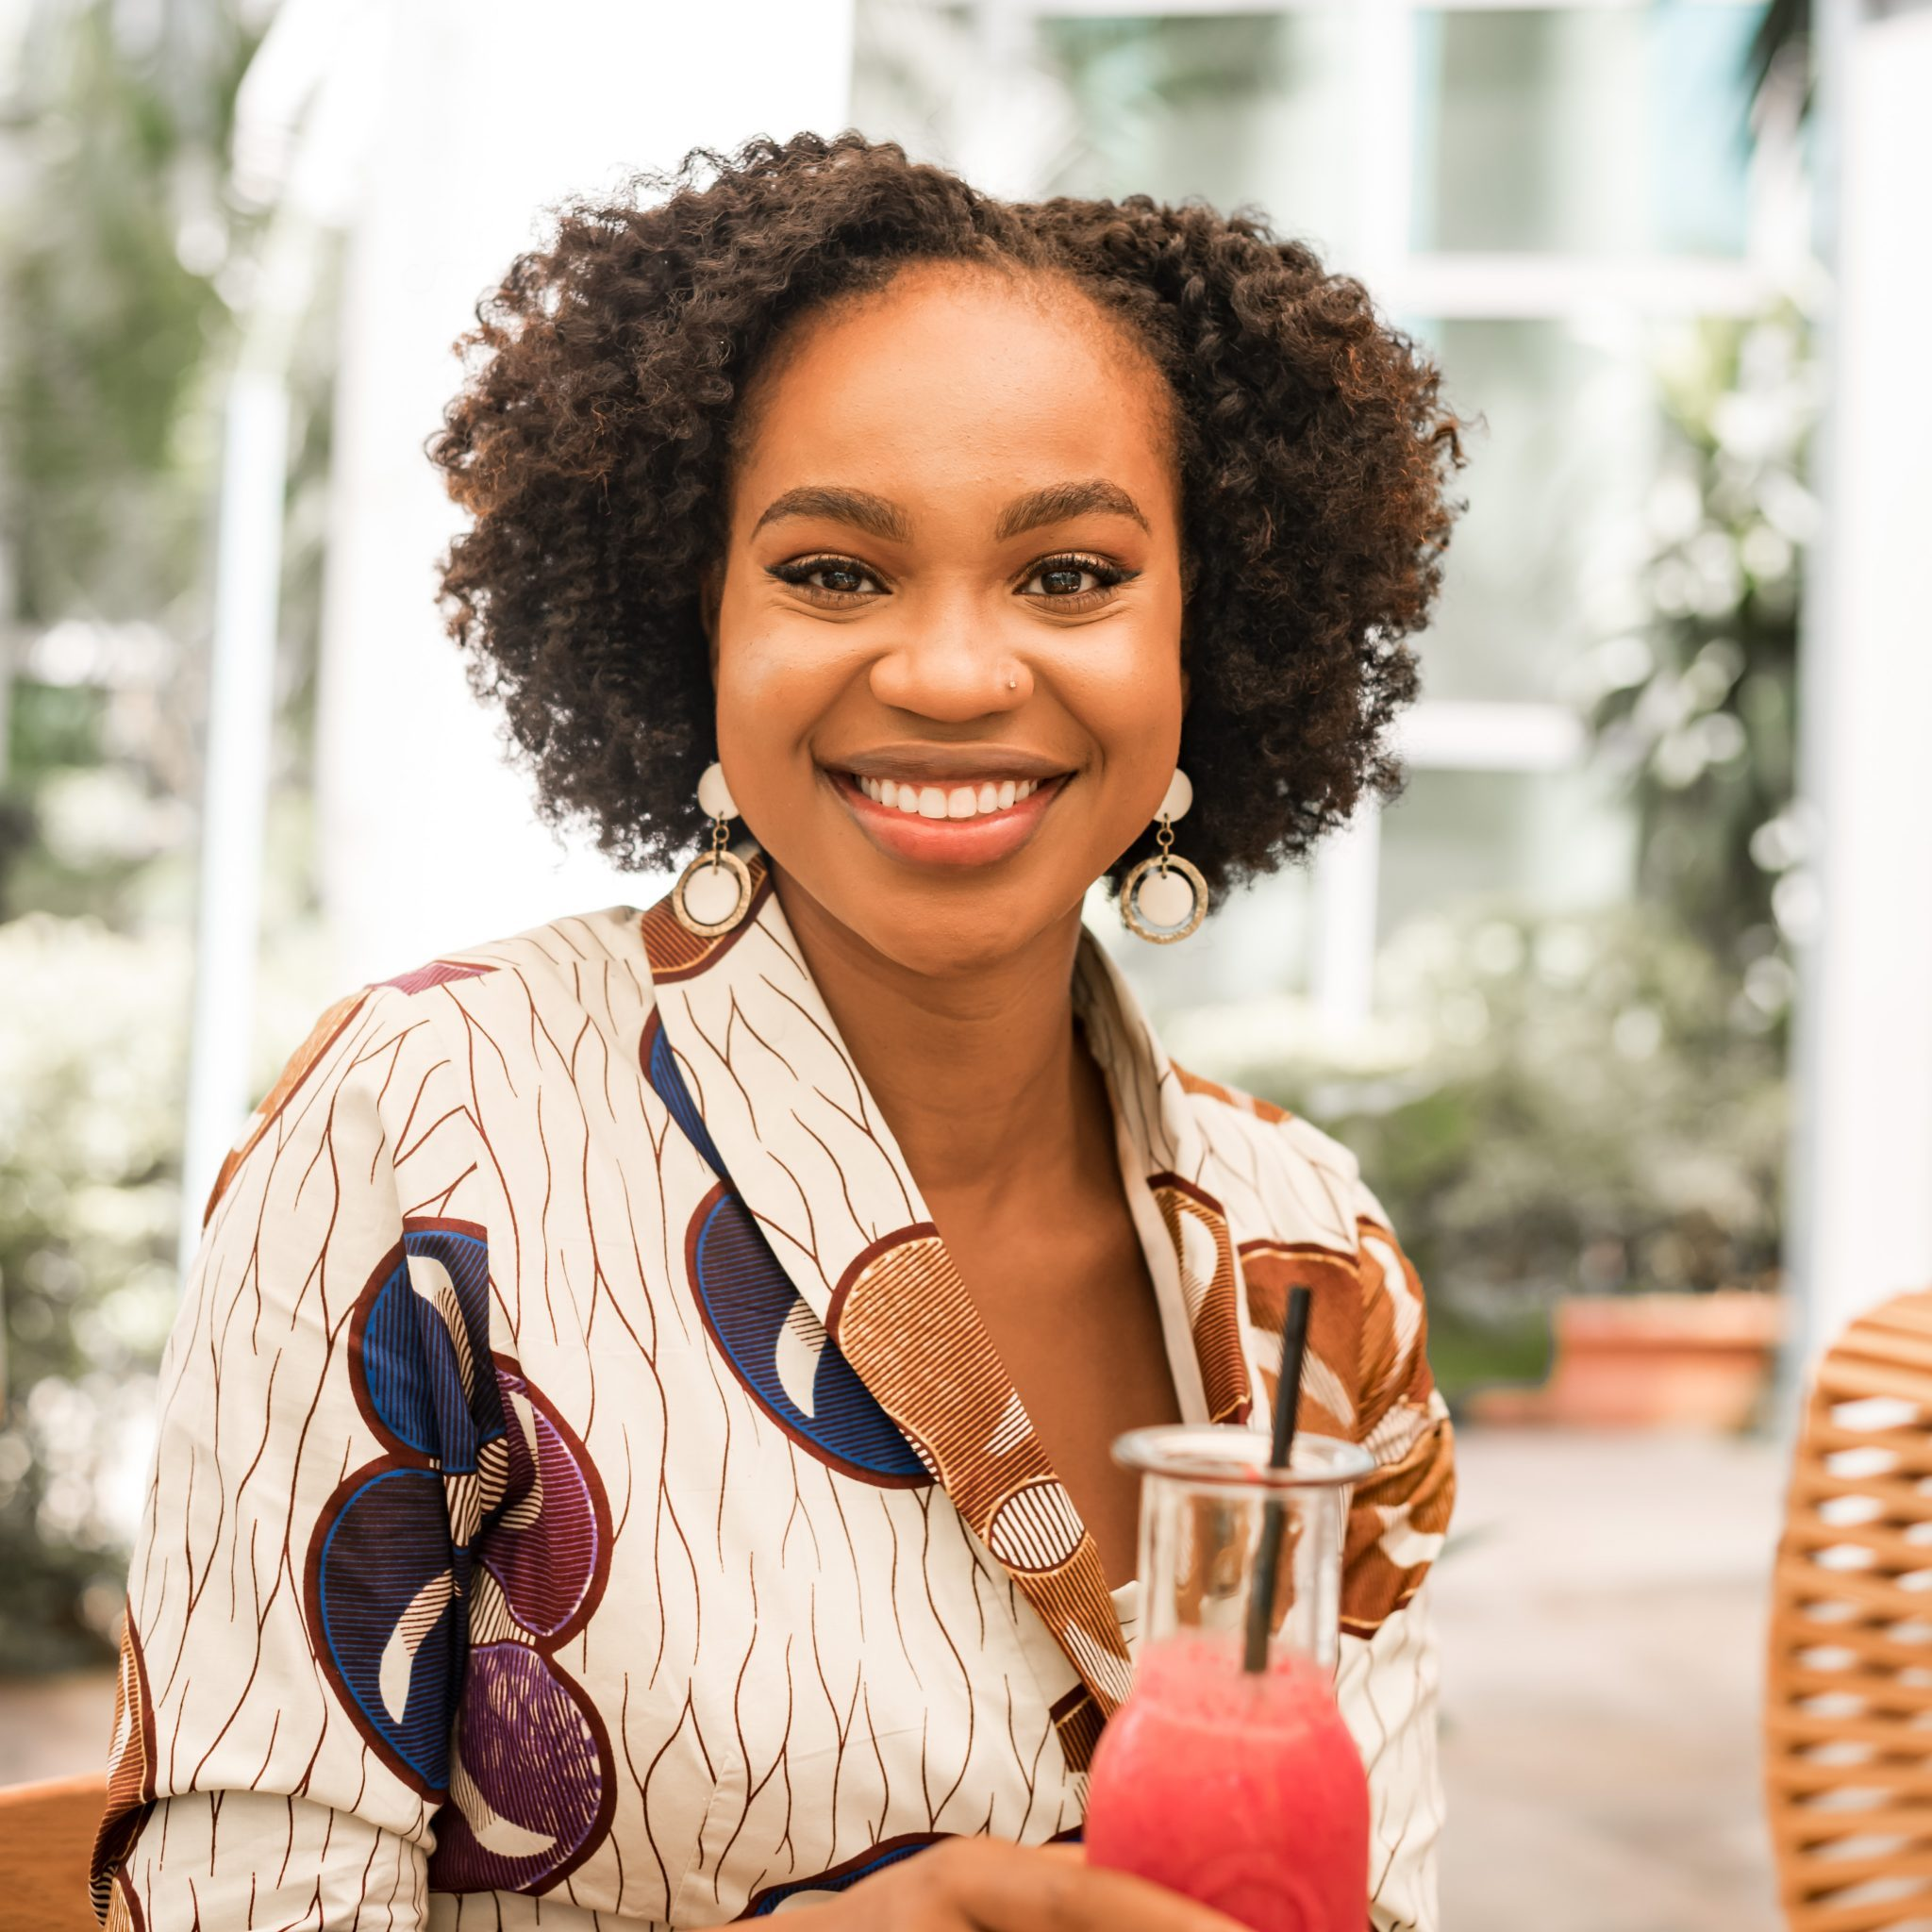 伊耶玛·科拉in African print dress  和  twist out, smiling  和  drinking a cocktail